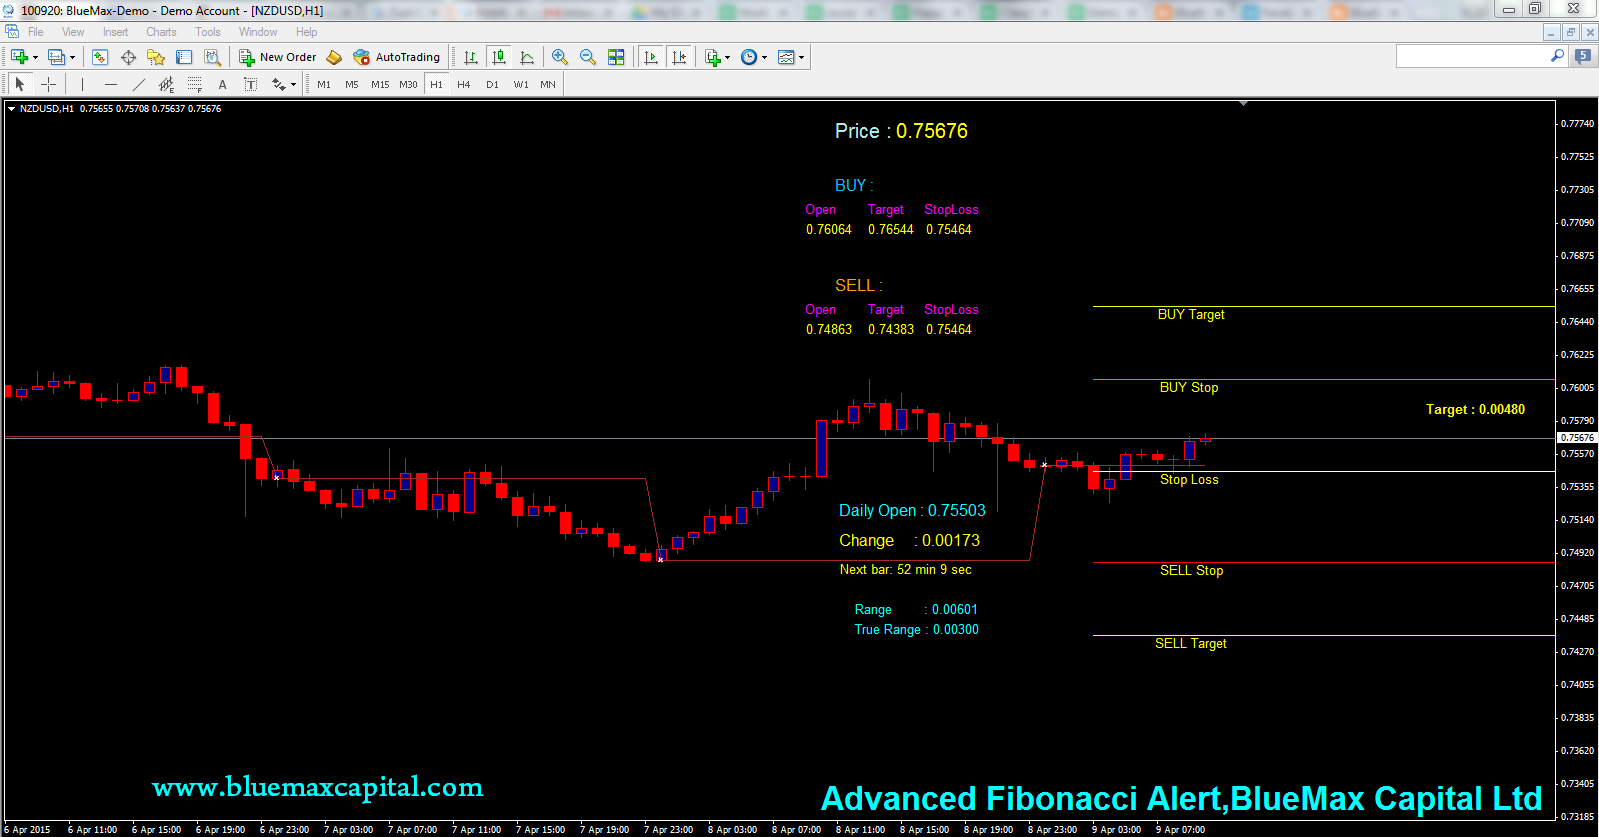 NZDUSD Daily articles with advanced Fibonacci alert-source from BlueMax Capital 09/04/2015